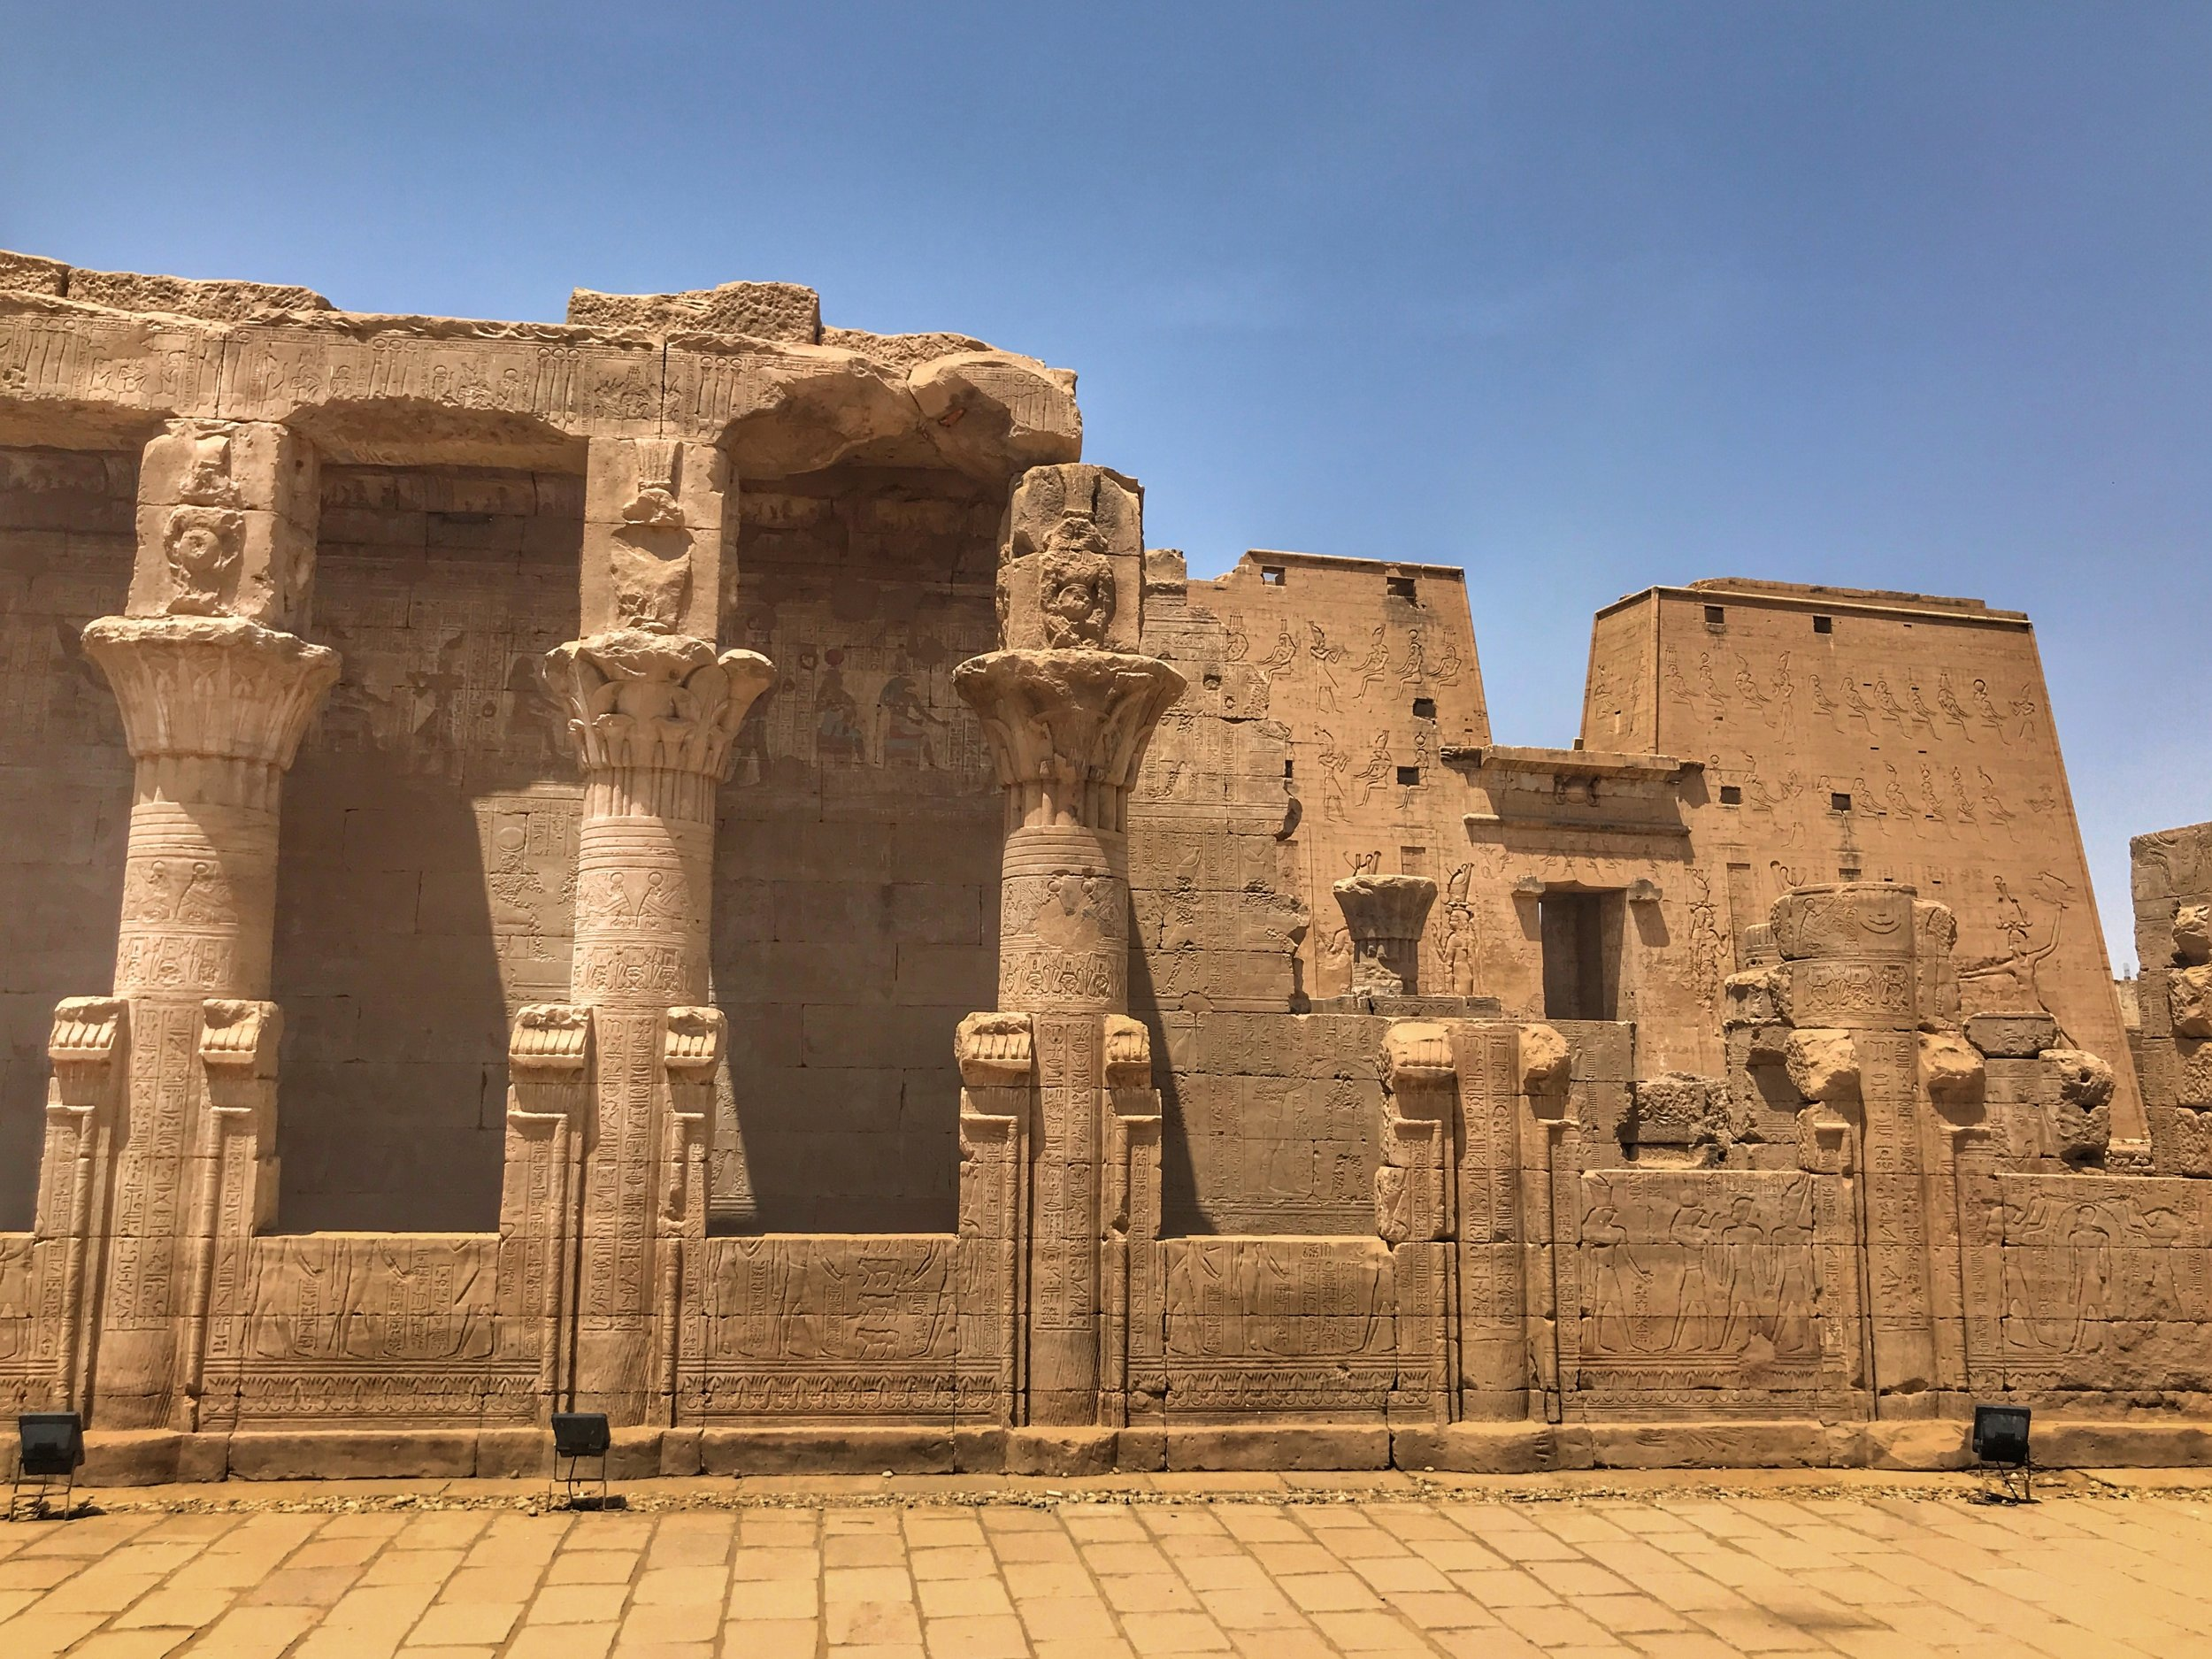 The mammisi in front of the main temple at Edfu honors Harsomptus, the son of Horus and Hathor. The courtyard in front of smaller structure was the site of an annual festival of singing and dancing